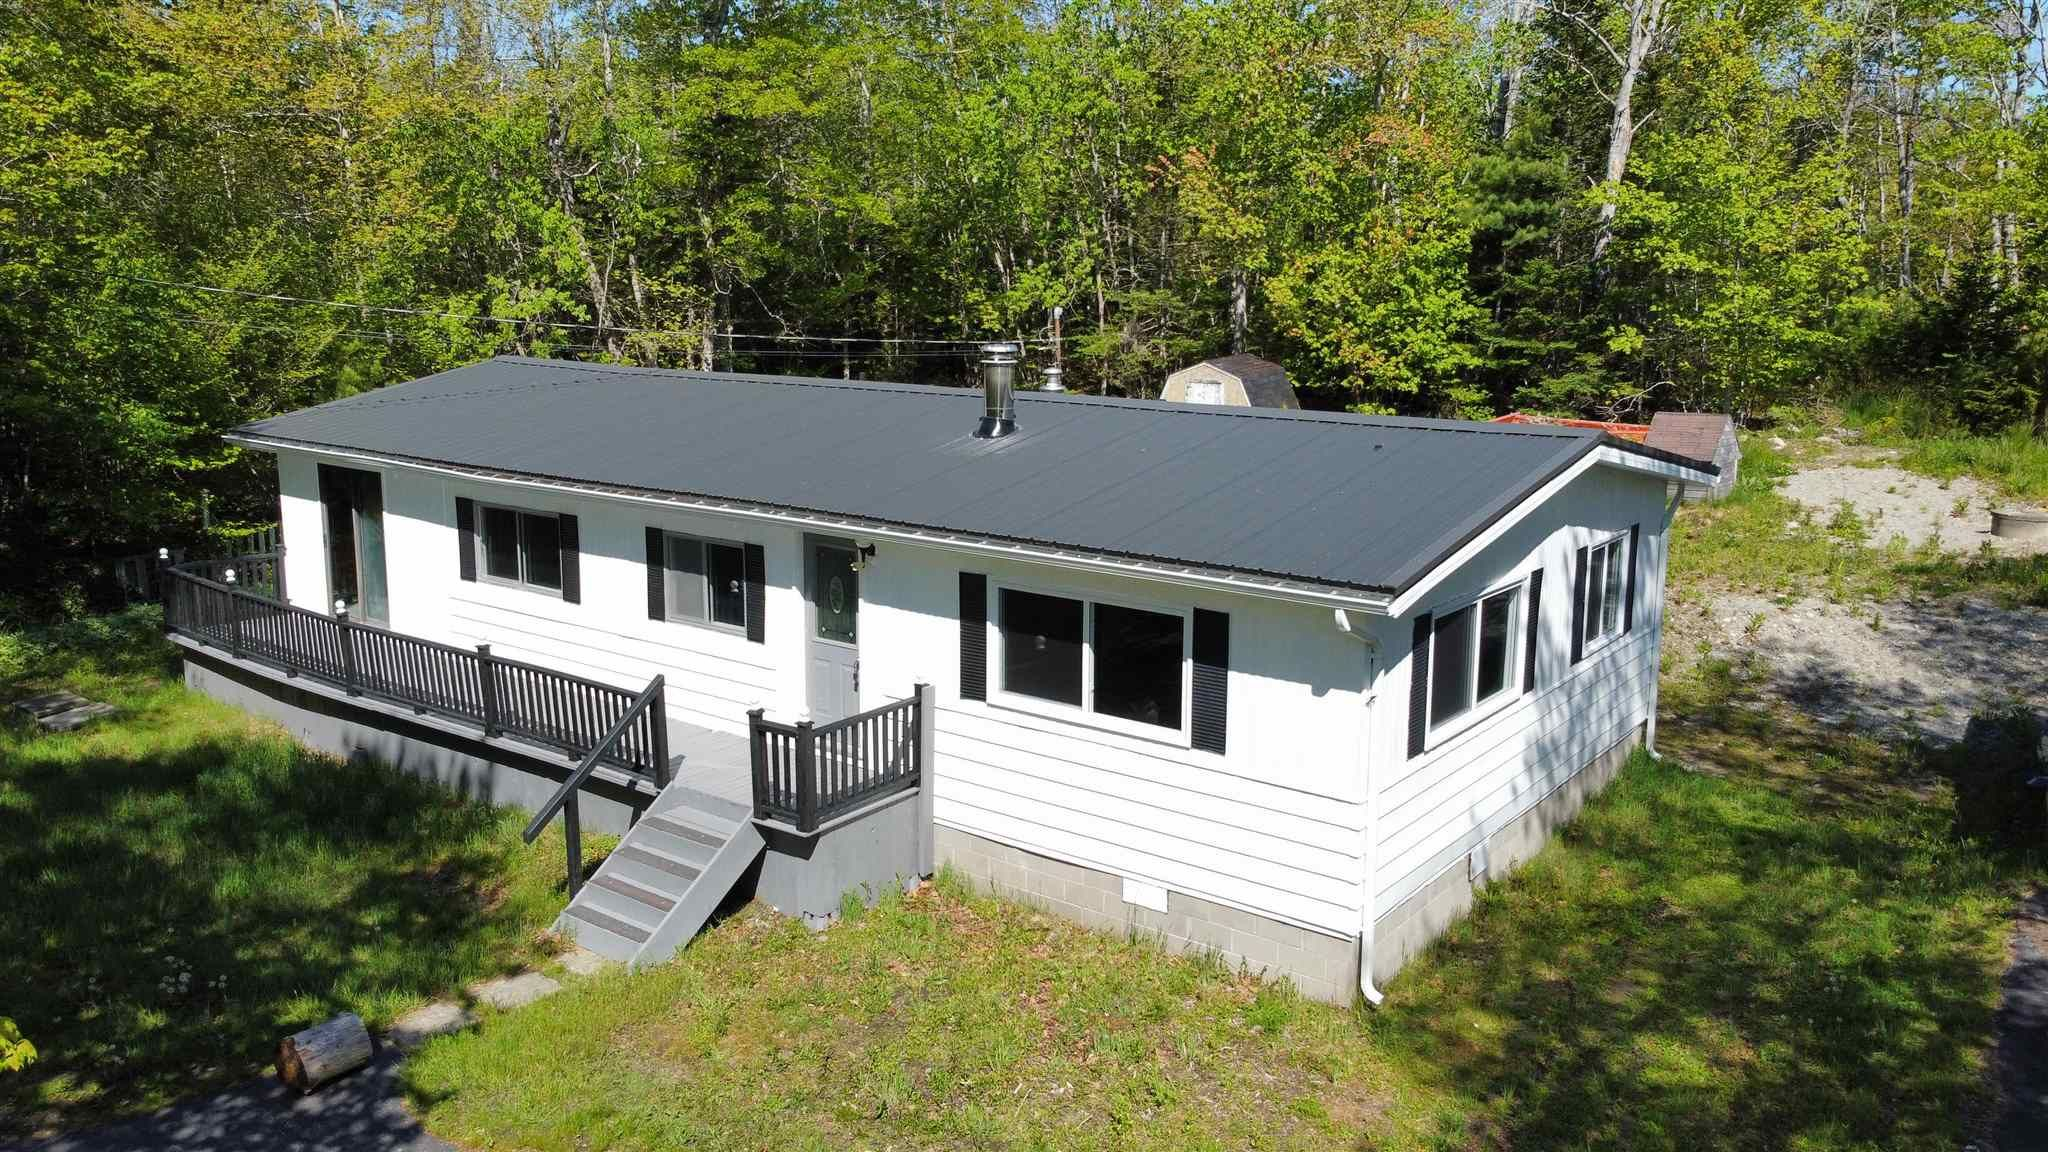 Main Photo: 799 Woodlawn Drive in Shelburne: 407-Shelburne County Residential for sale (South Shore)  : MLS®# 202114438